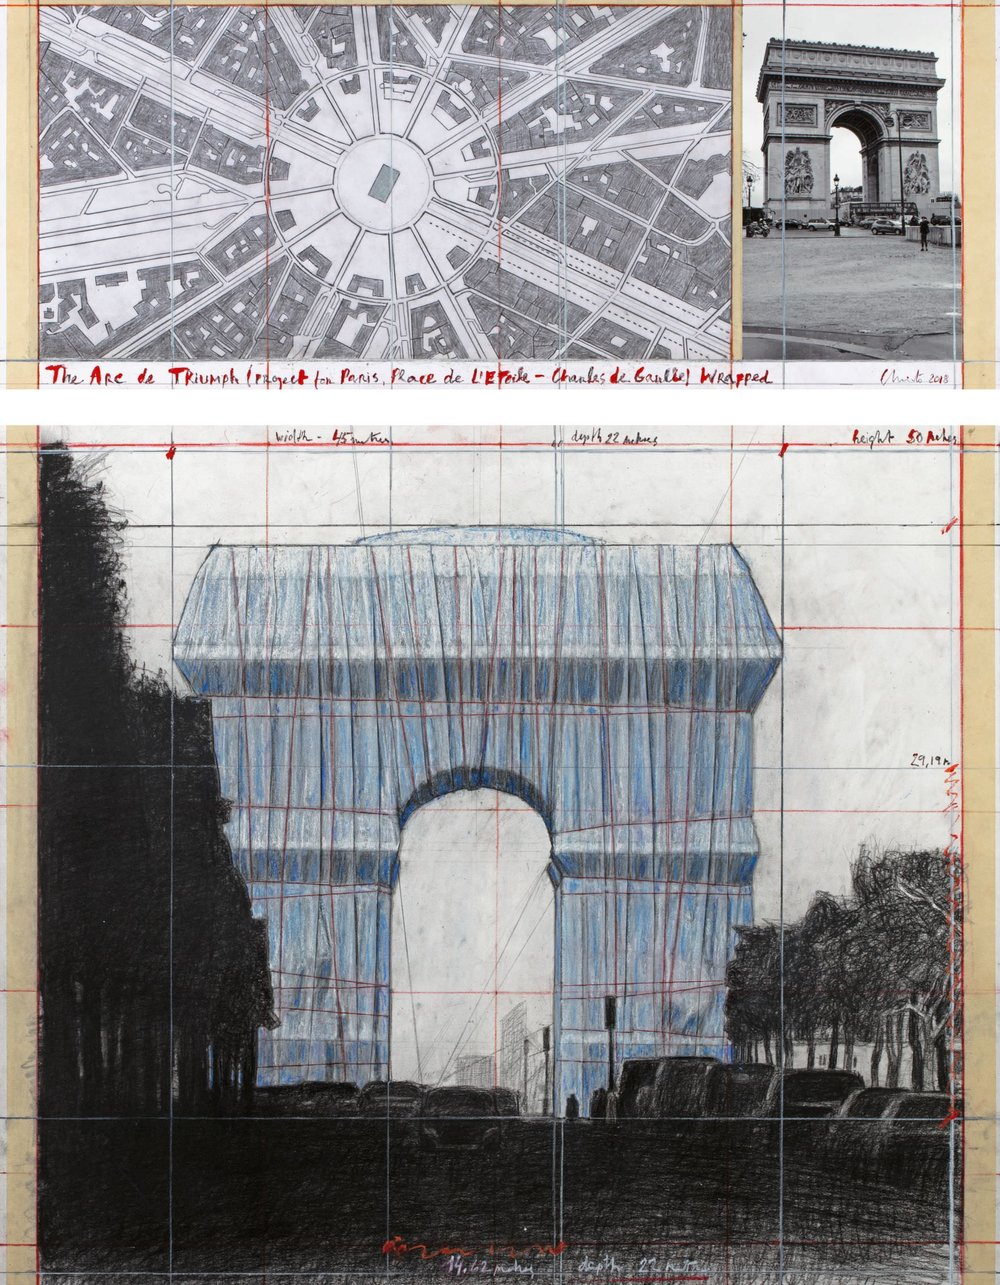 """Christo, The Arc de Triumph (Project for Paris, Place de l'Etoile – Charles de Gaulle) Wrapped. Collage 2018 in two parts 12 x 30 1/2"""" and 26 1/4 x 30 1/2"""" (30.5 x 77.5 cm and 66.7 x 77.5 cm) Pencil, charcoal, wax crayon, fabric, twine, enamel paint, photograph by Wolfgang Volz, hand-drawn map and tape. Photo: André Grossmann © 2018 Christo"""